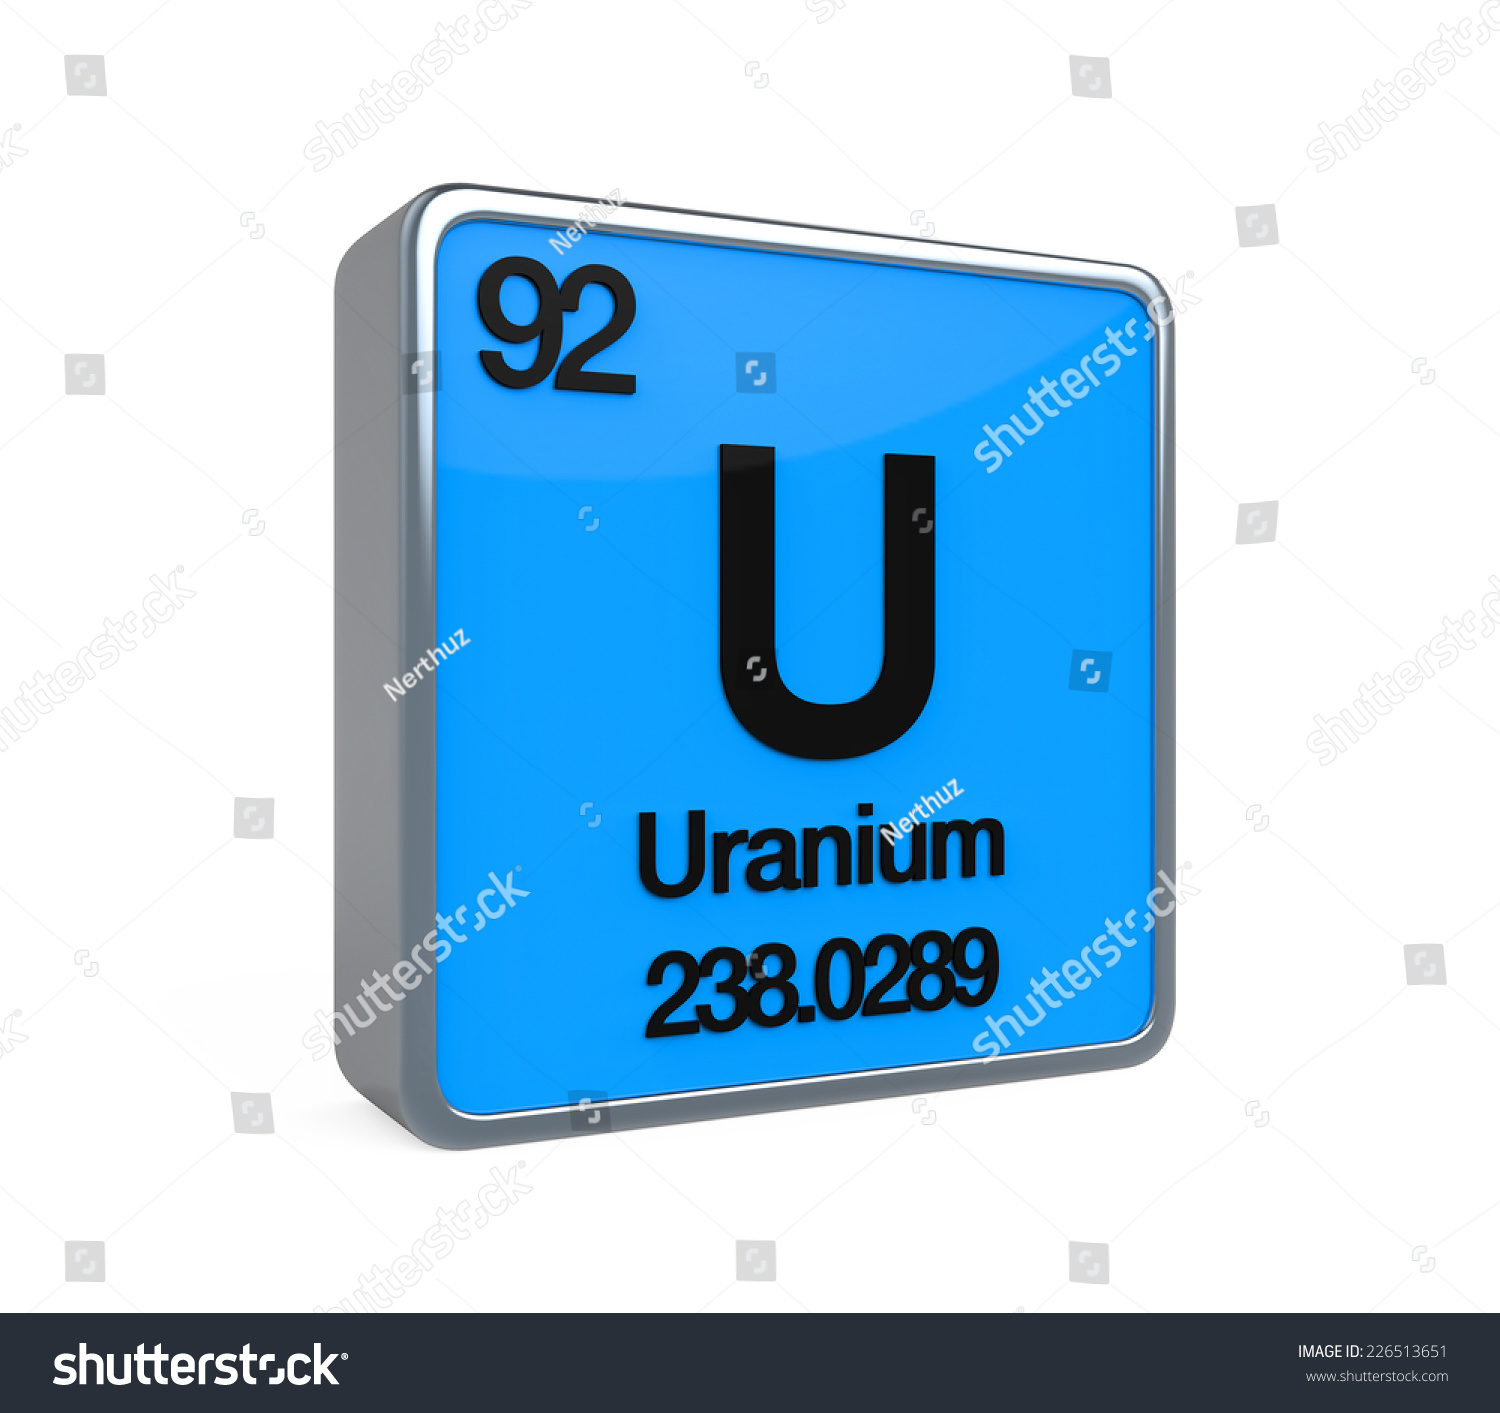 Uranium element periodic table stock illustration 226513651 uranium element periodic table gamestrikefo Image collections